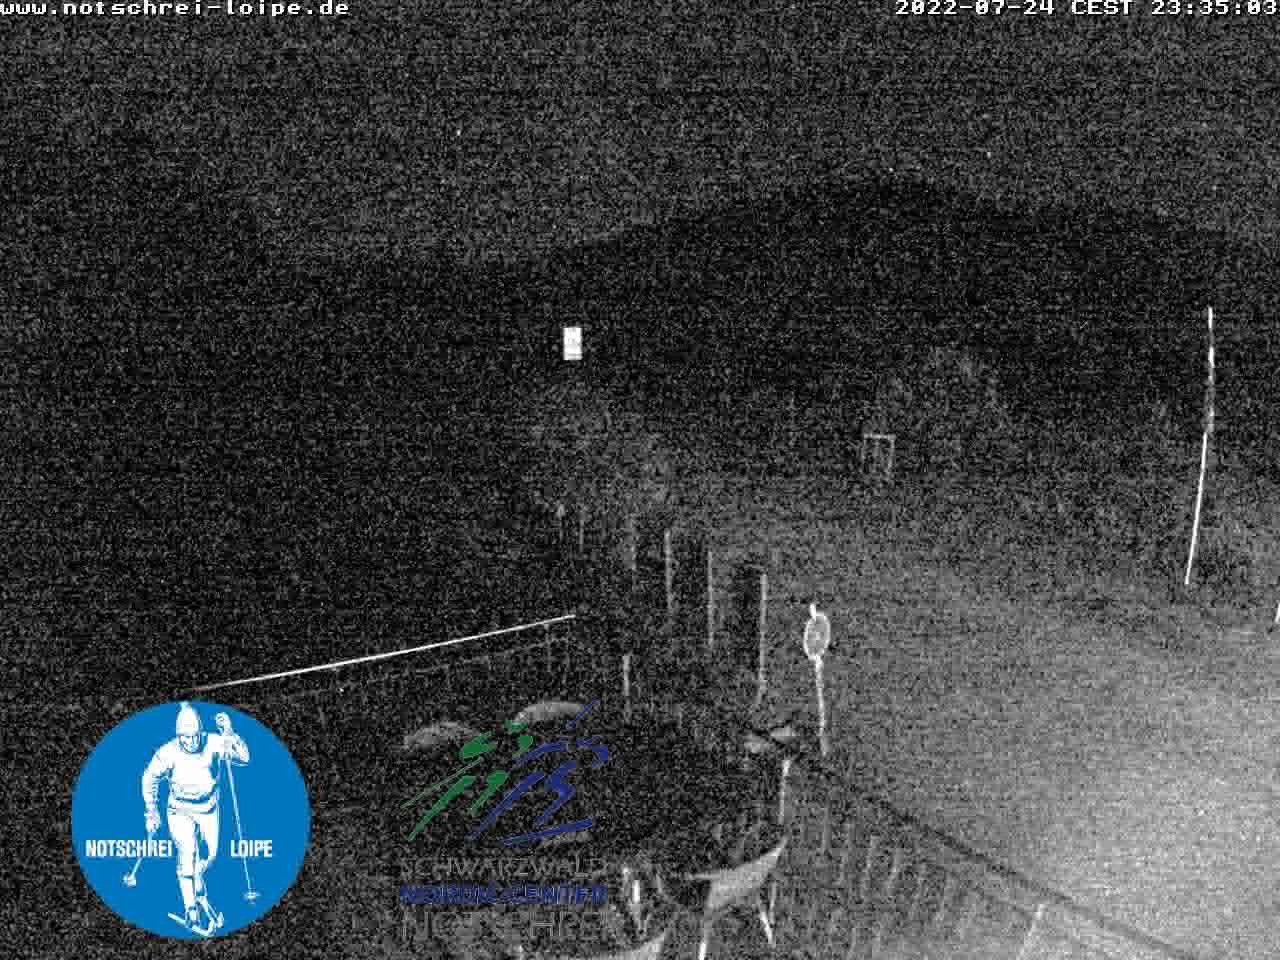 Webcam am Notschrei